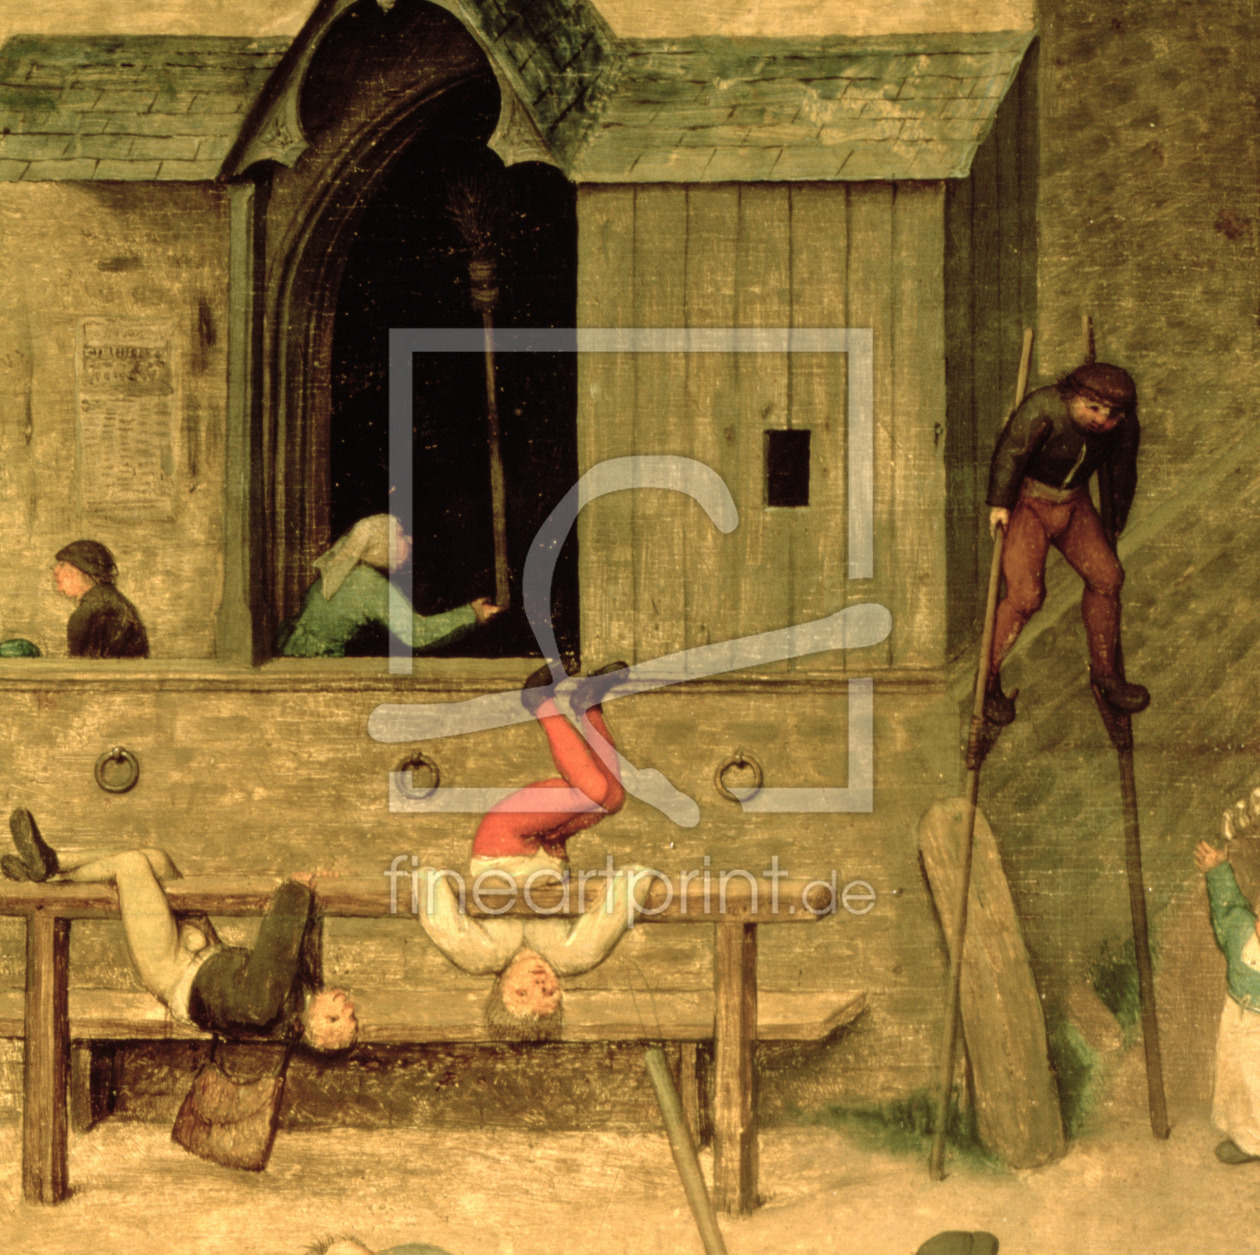 Bild-Nr.: 31002831 Children's Games : detail of a boy on stilts and children playing in the stocks, erstellt von Bruegel, Pieter the Elder